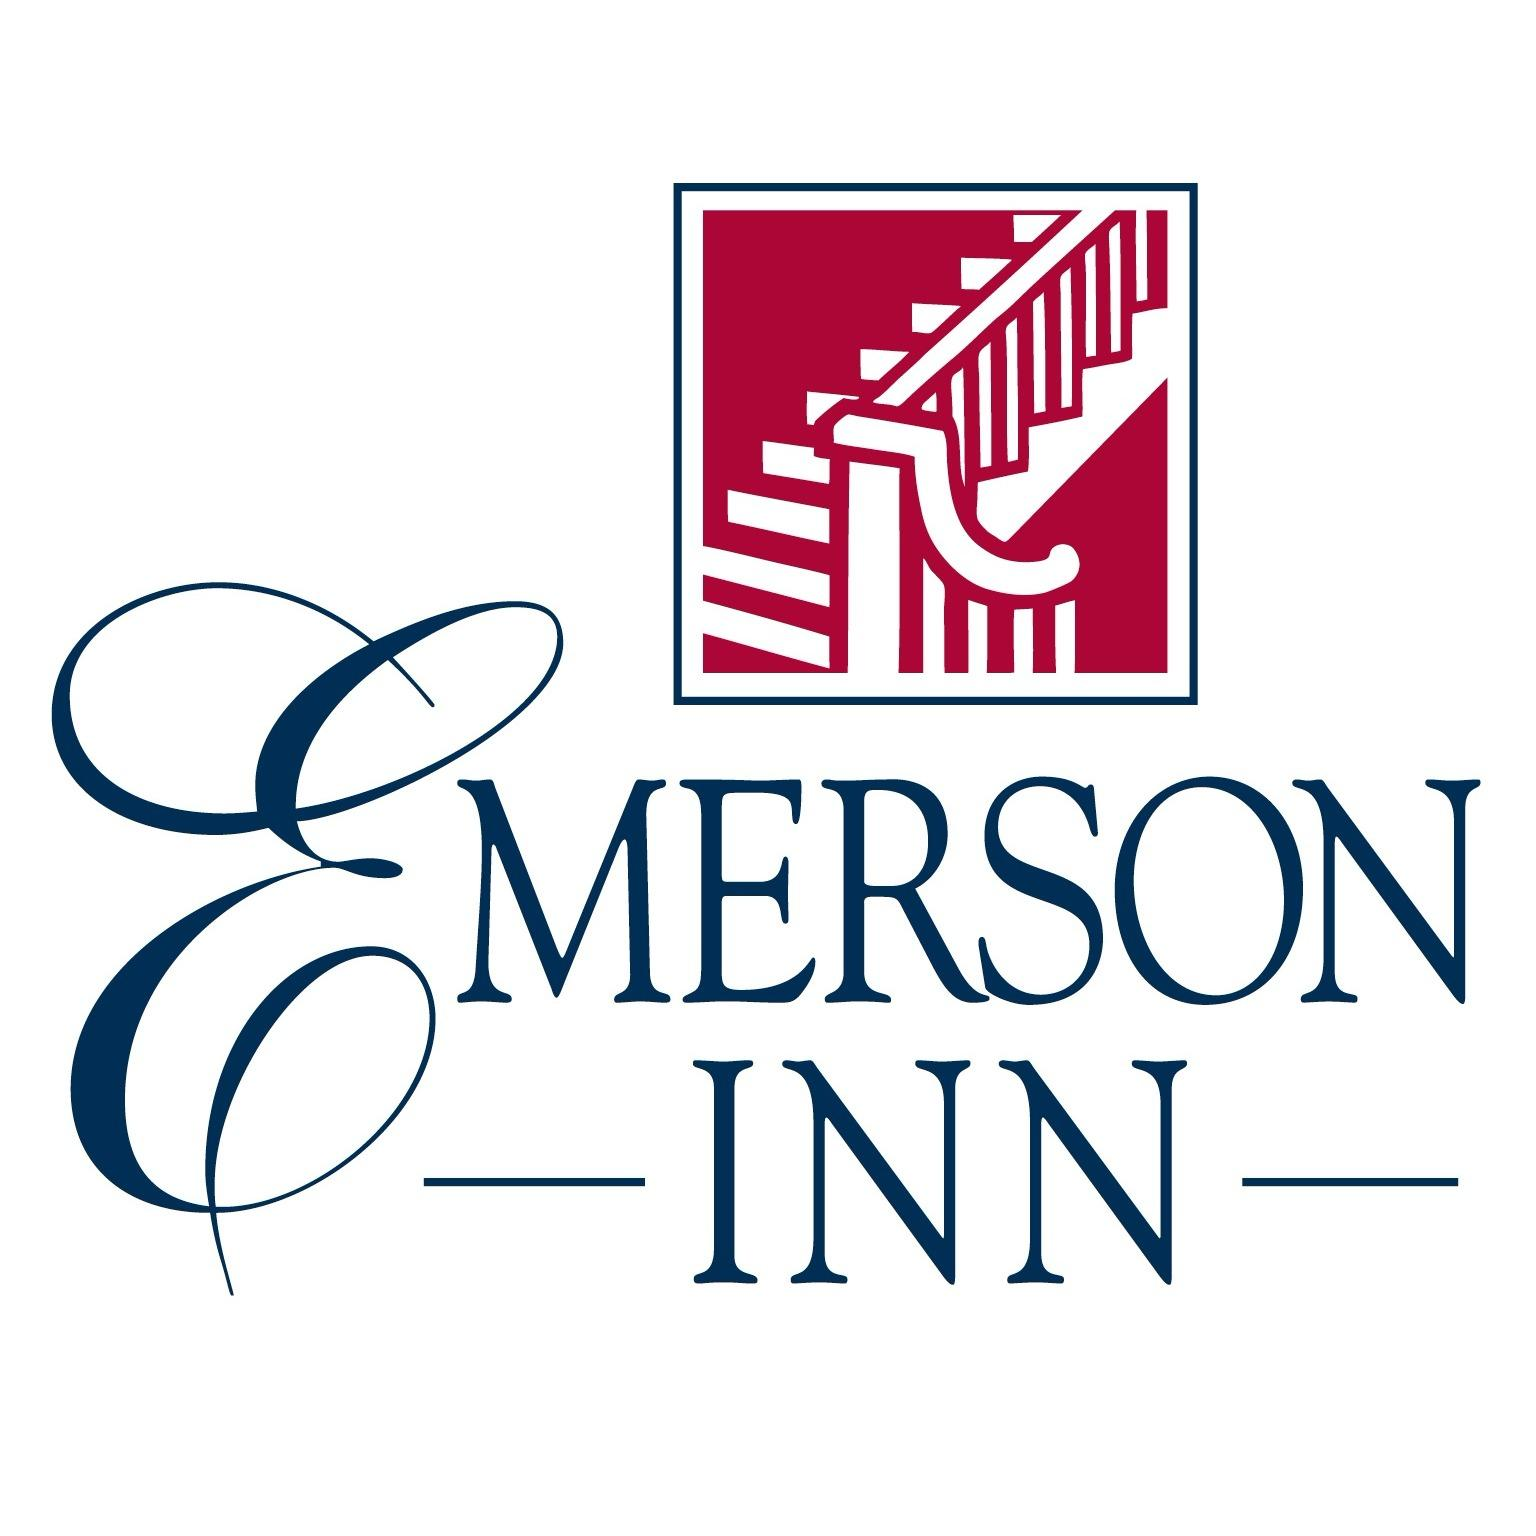 The Emerson Inn